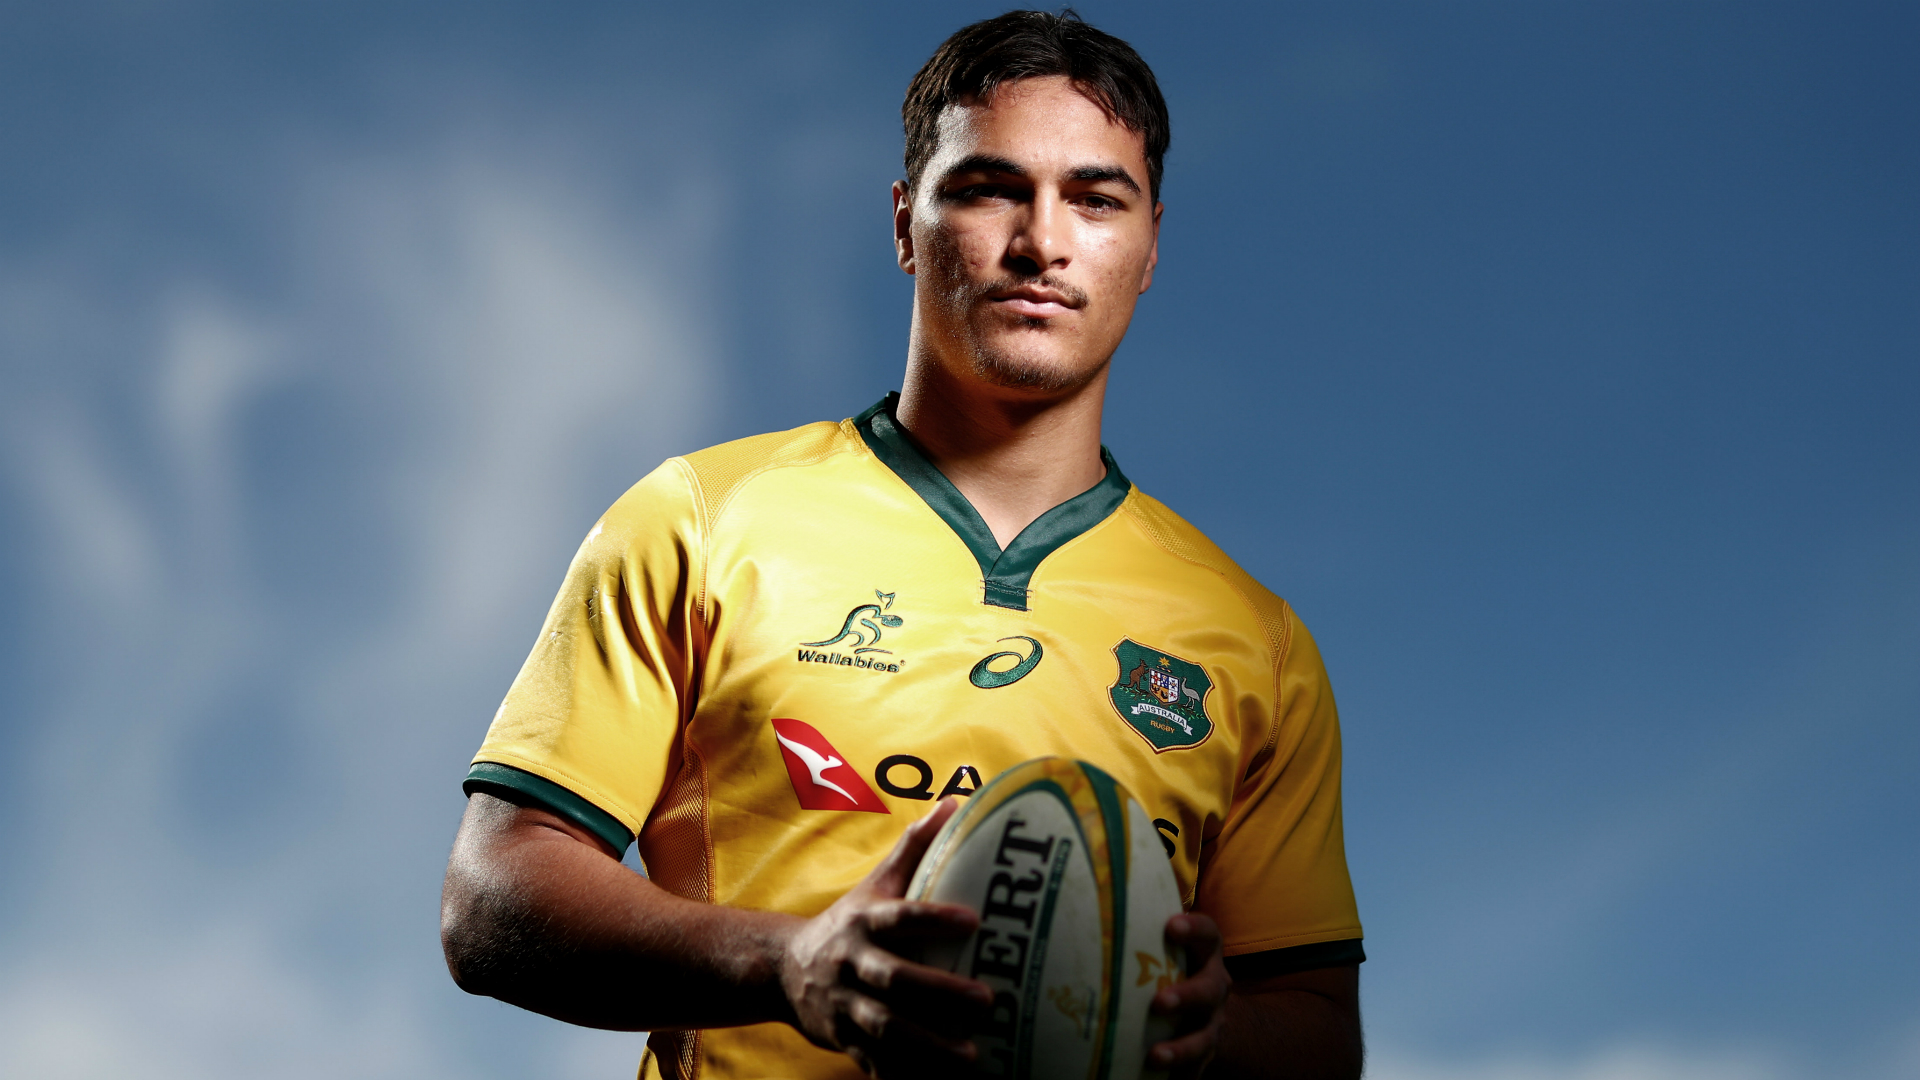 Jordan Petaia, 19, is the only uncapped Australia player in Michael Cheika's squad for the showpiece event, which starts on September 20.